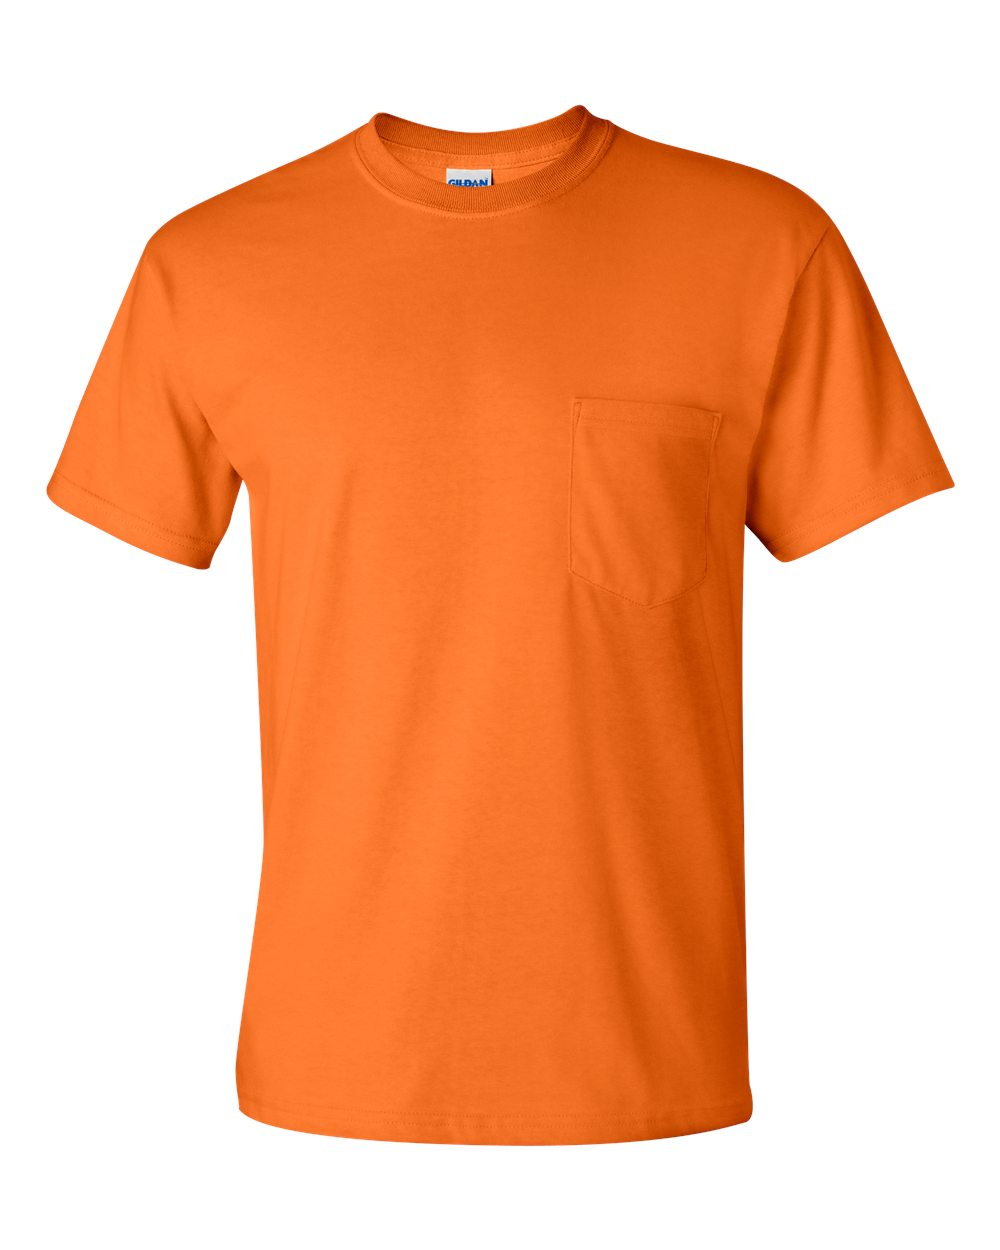 Gildan T-Shirt with a Pocket, Ultra Cotton - $